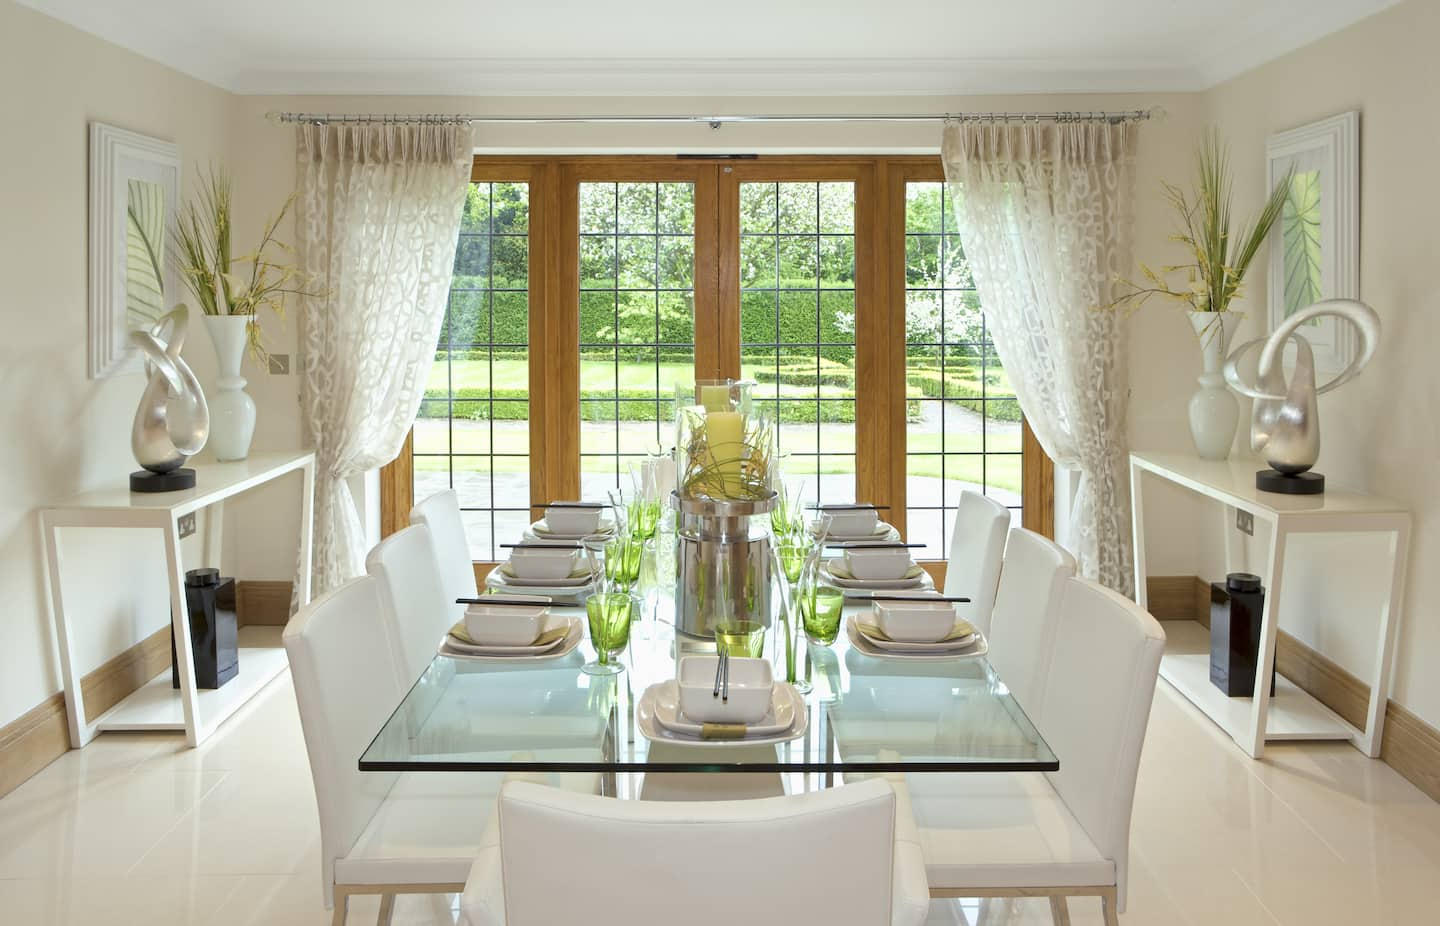 Exceptional Contemporary Formal Dining Room With White Chairs, Glass Table, Garden View  Through Glass Doors